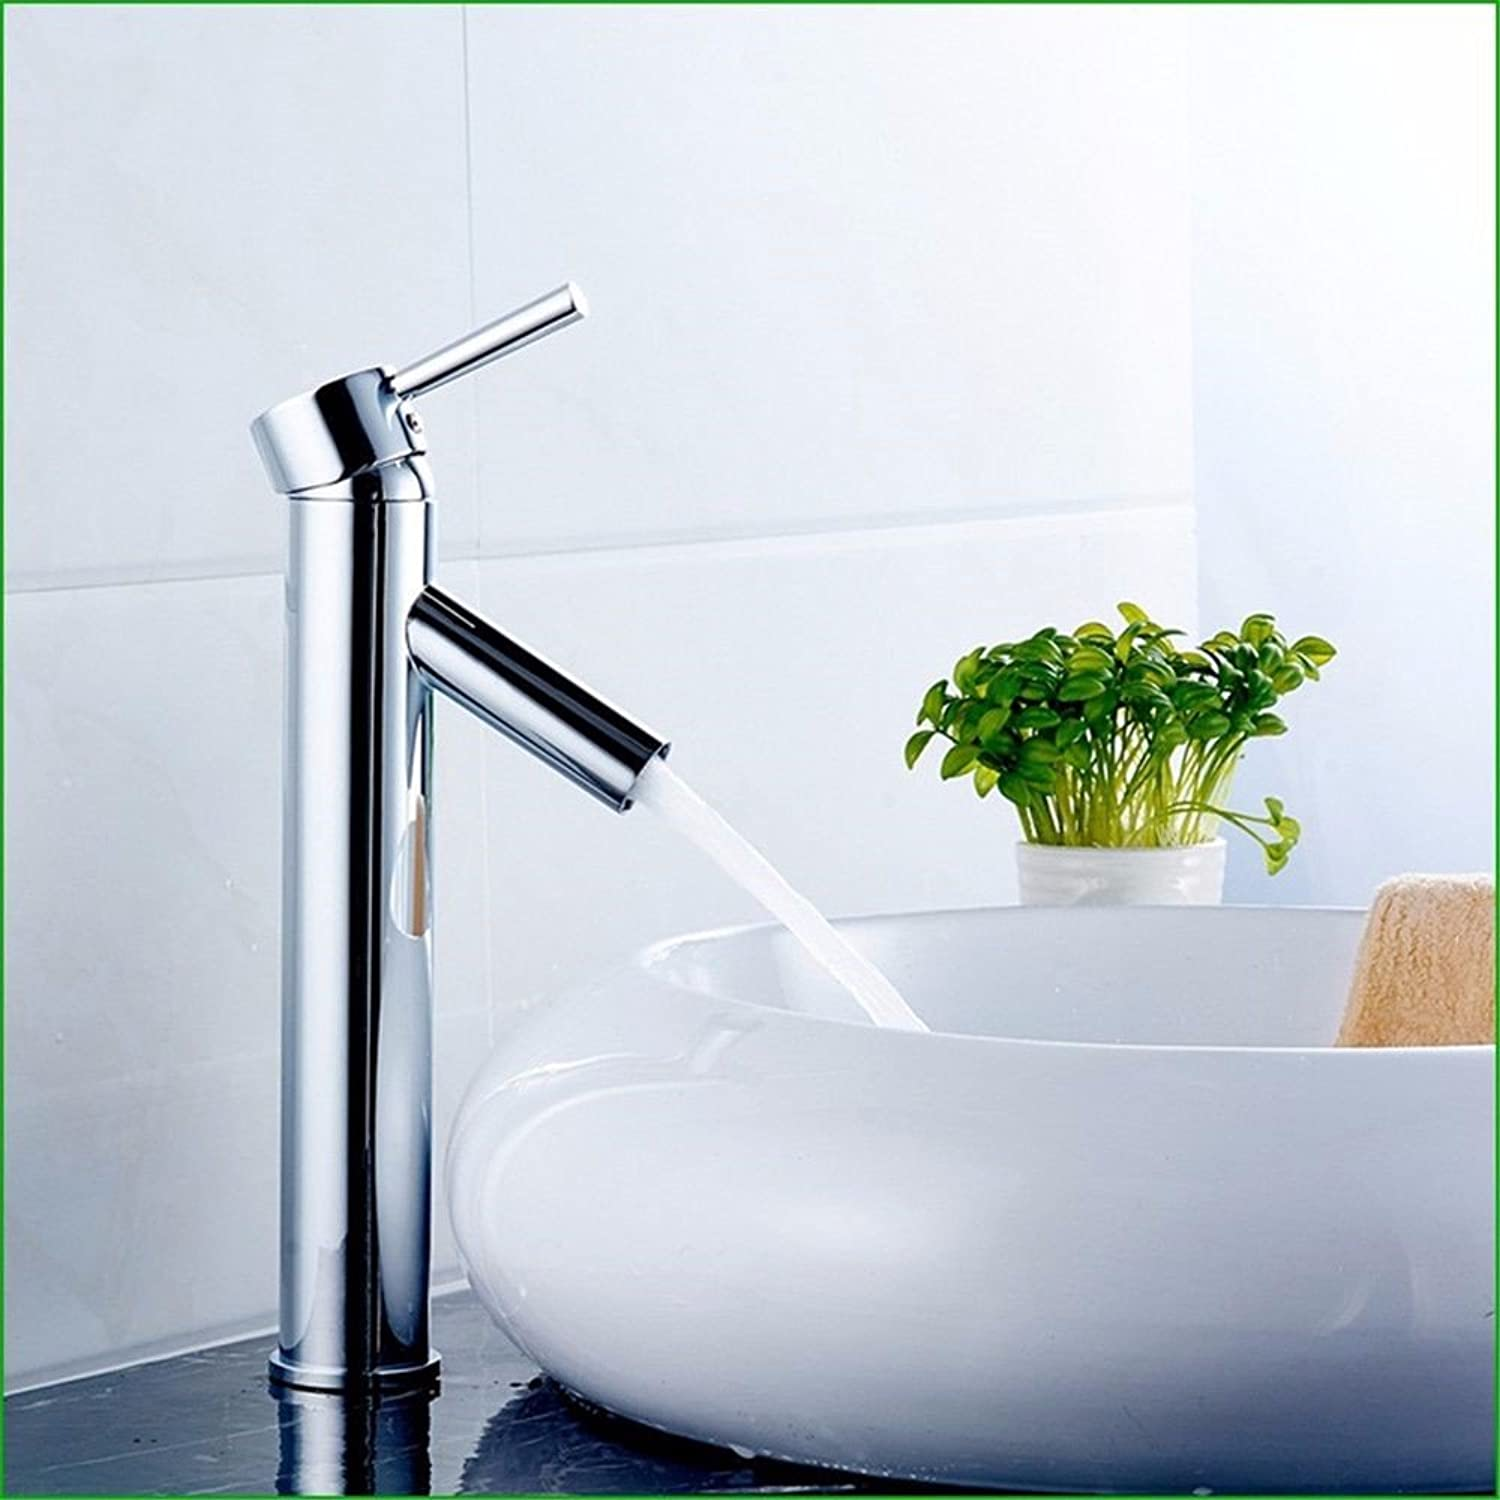 Bijjaladeva Antique Bathroom Sink Vessel Faucet Basin Mixer Tap The Brass, Chrome Plated basin mixer is a water faucet washbasin bath tub faucet and cold water faucet